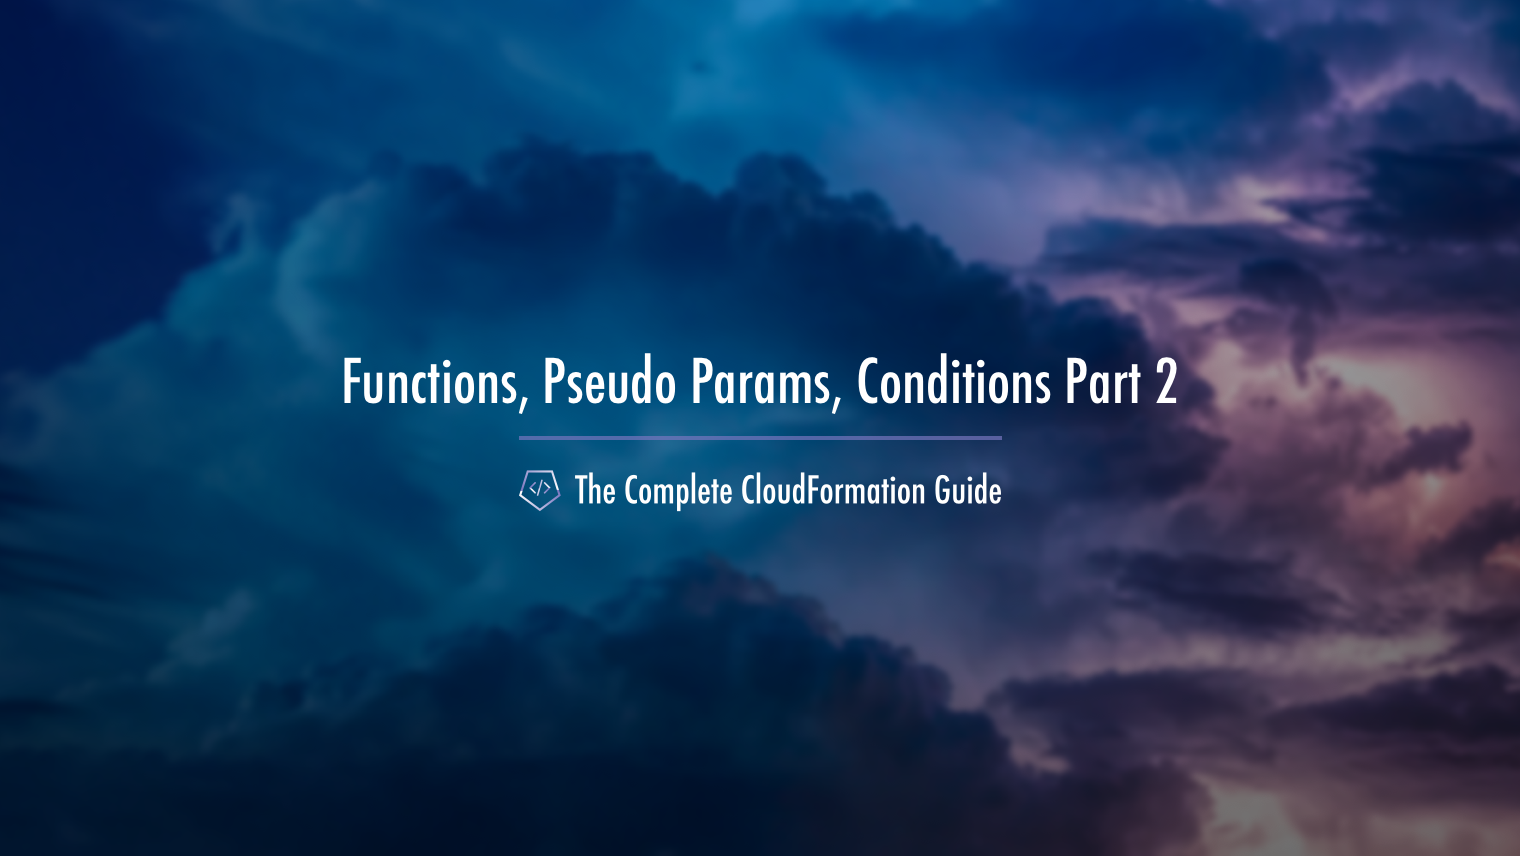 The Complete CloudFormation Guide Functions Pseudo Parameters Conditions part 2